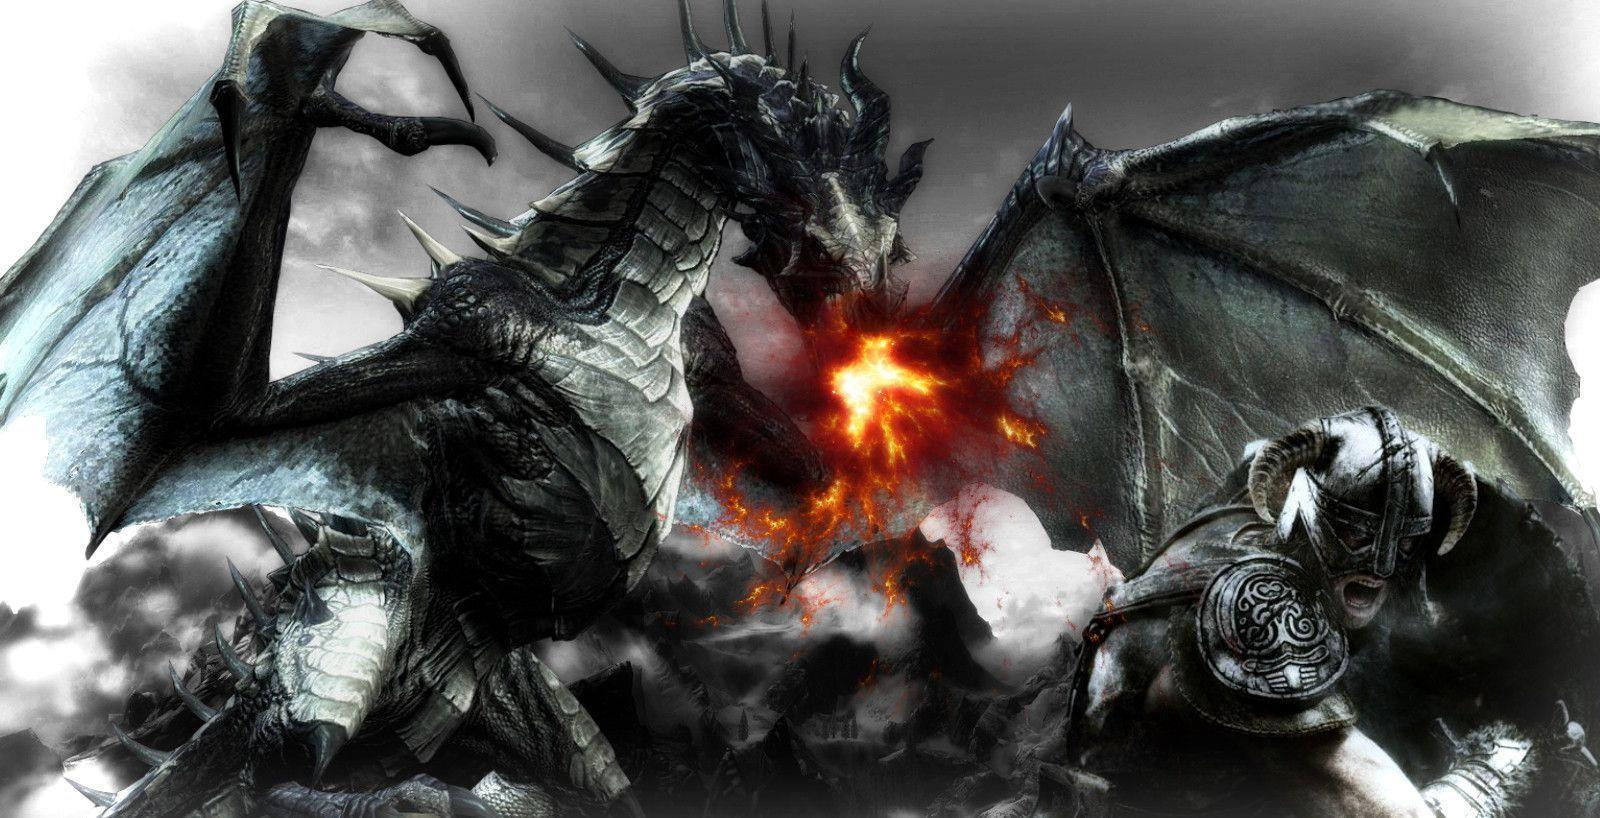 Skyrim wallpapers dragon fight by Nolan989890